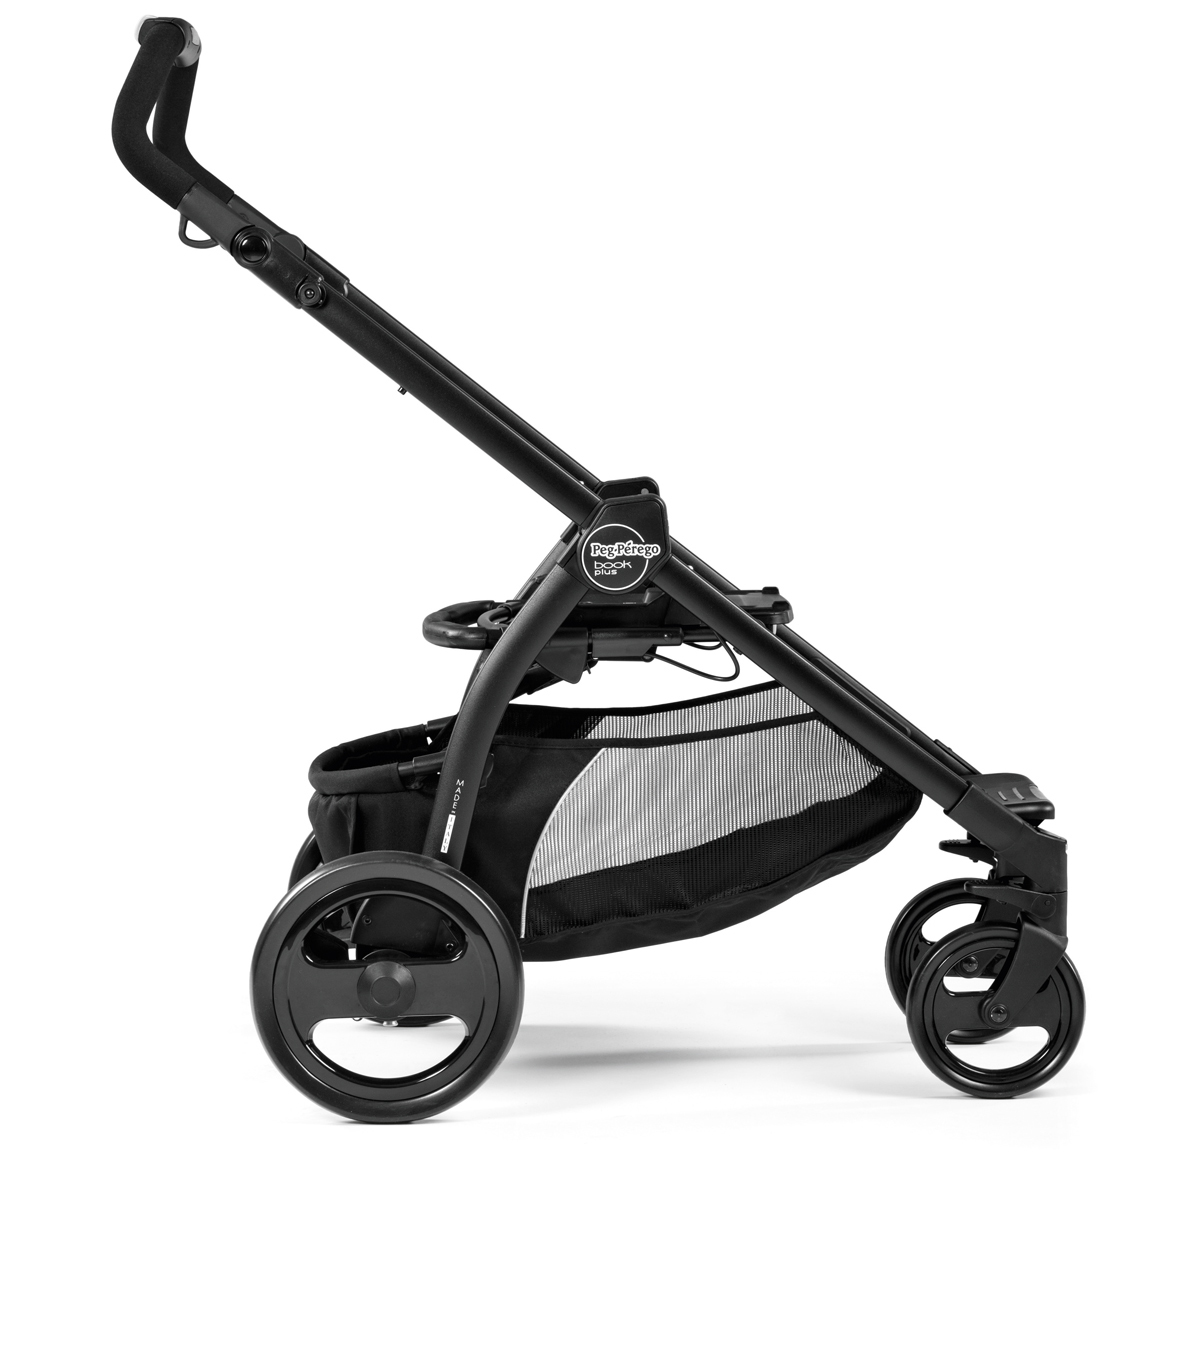 hr_2017_03_30_peg_perego_book_plus_black_mat.jpg